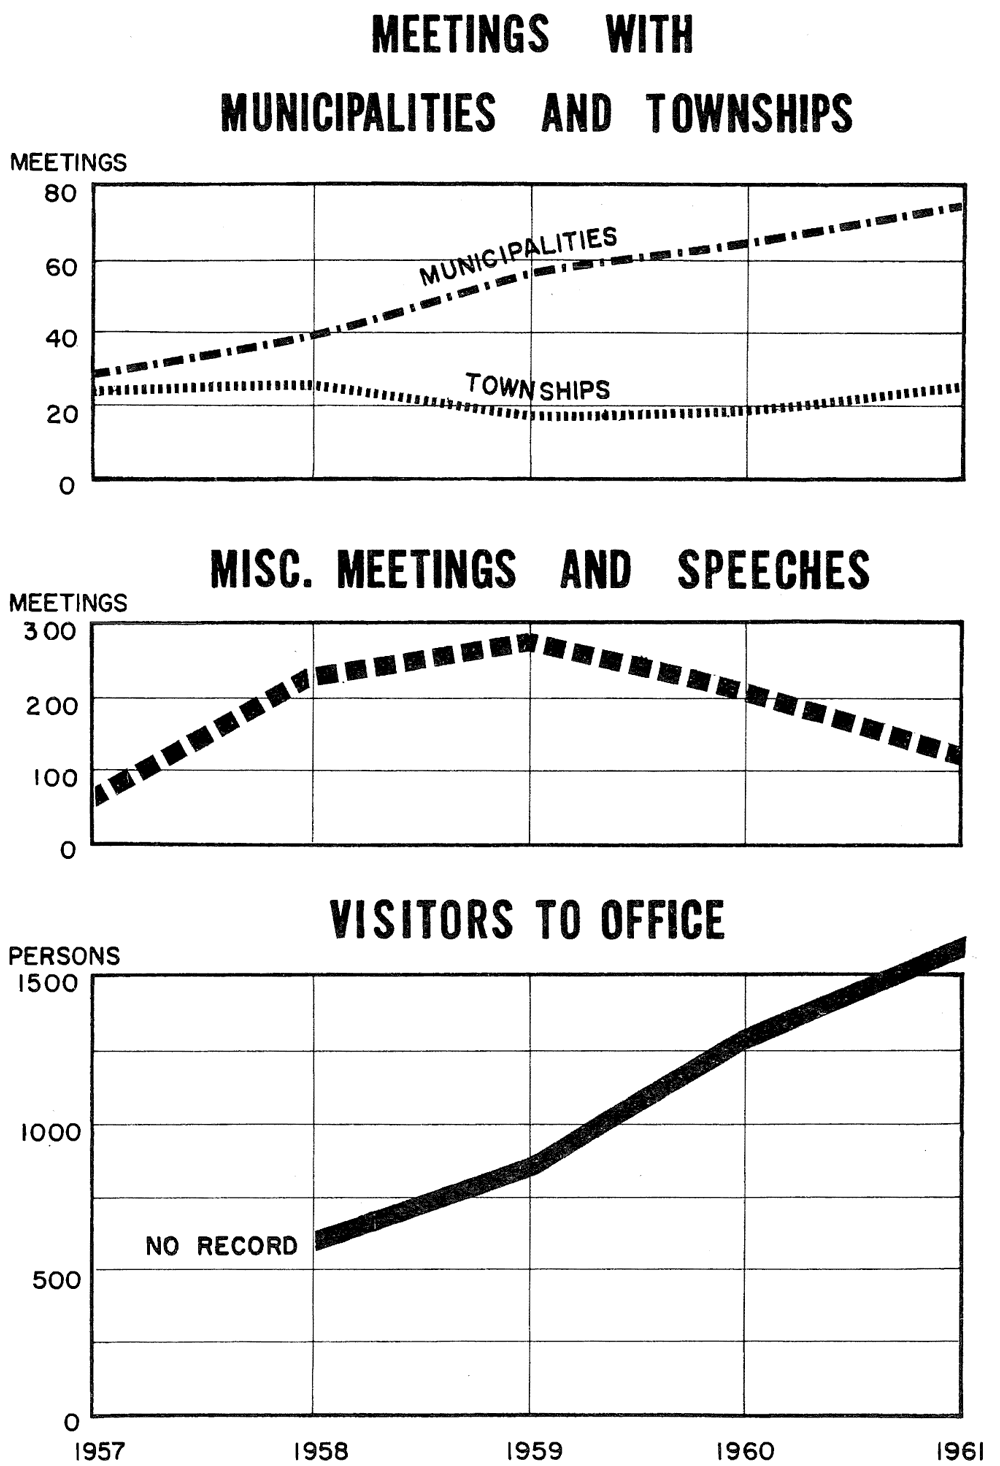 Figure 1. Reproduced from the 1961 Annual Report of the Lorain County (Ohio) Regional Planning Commission.